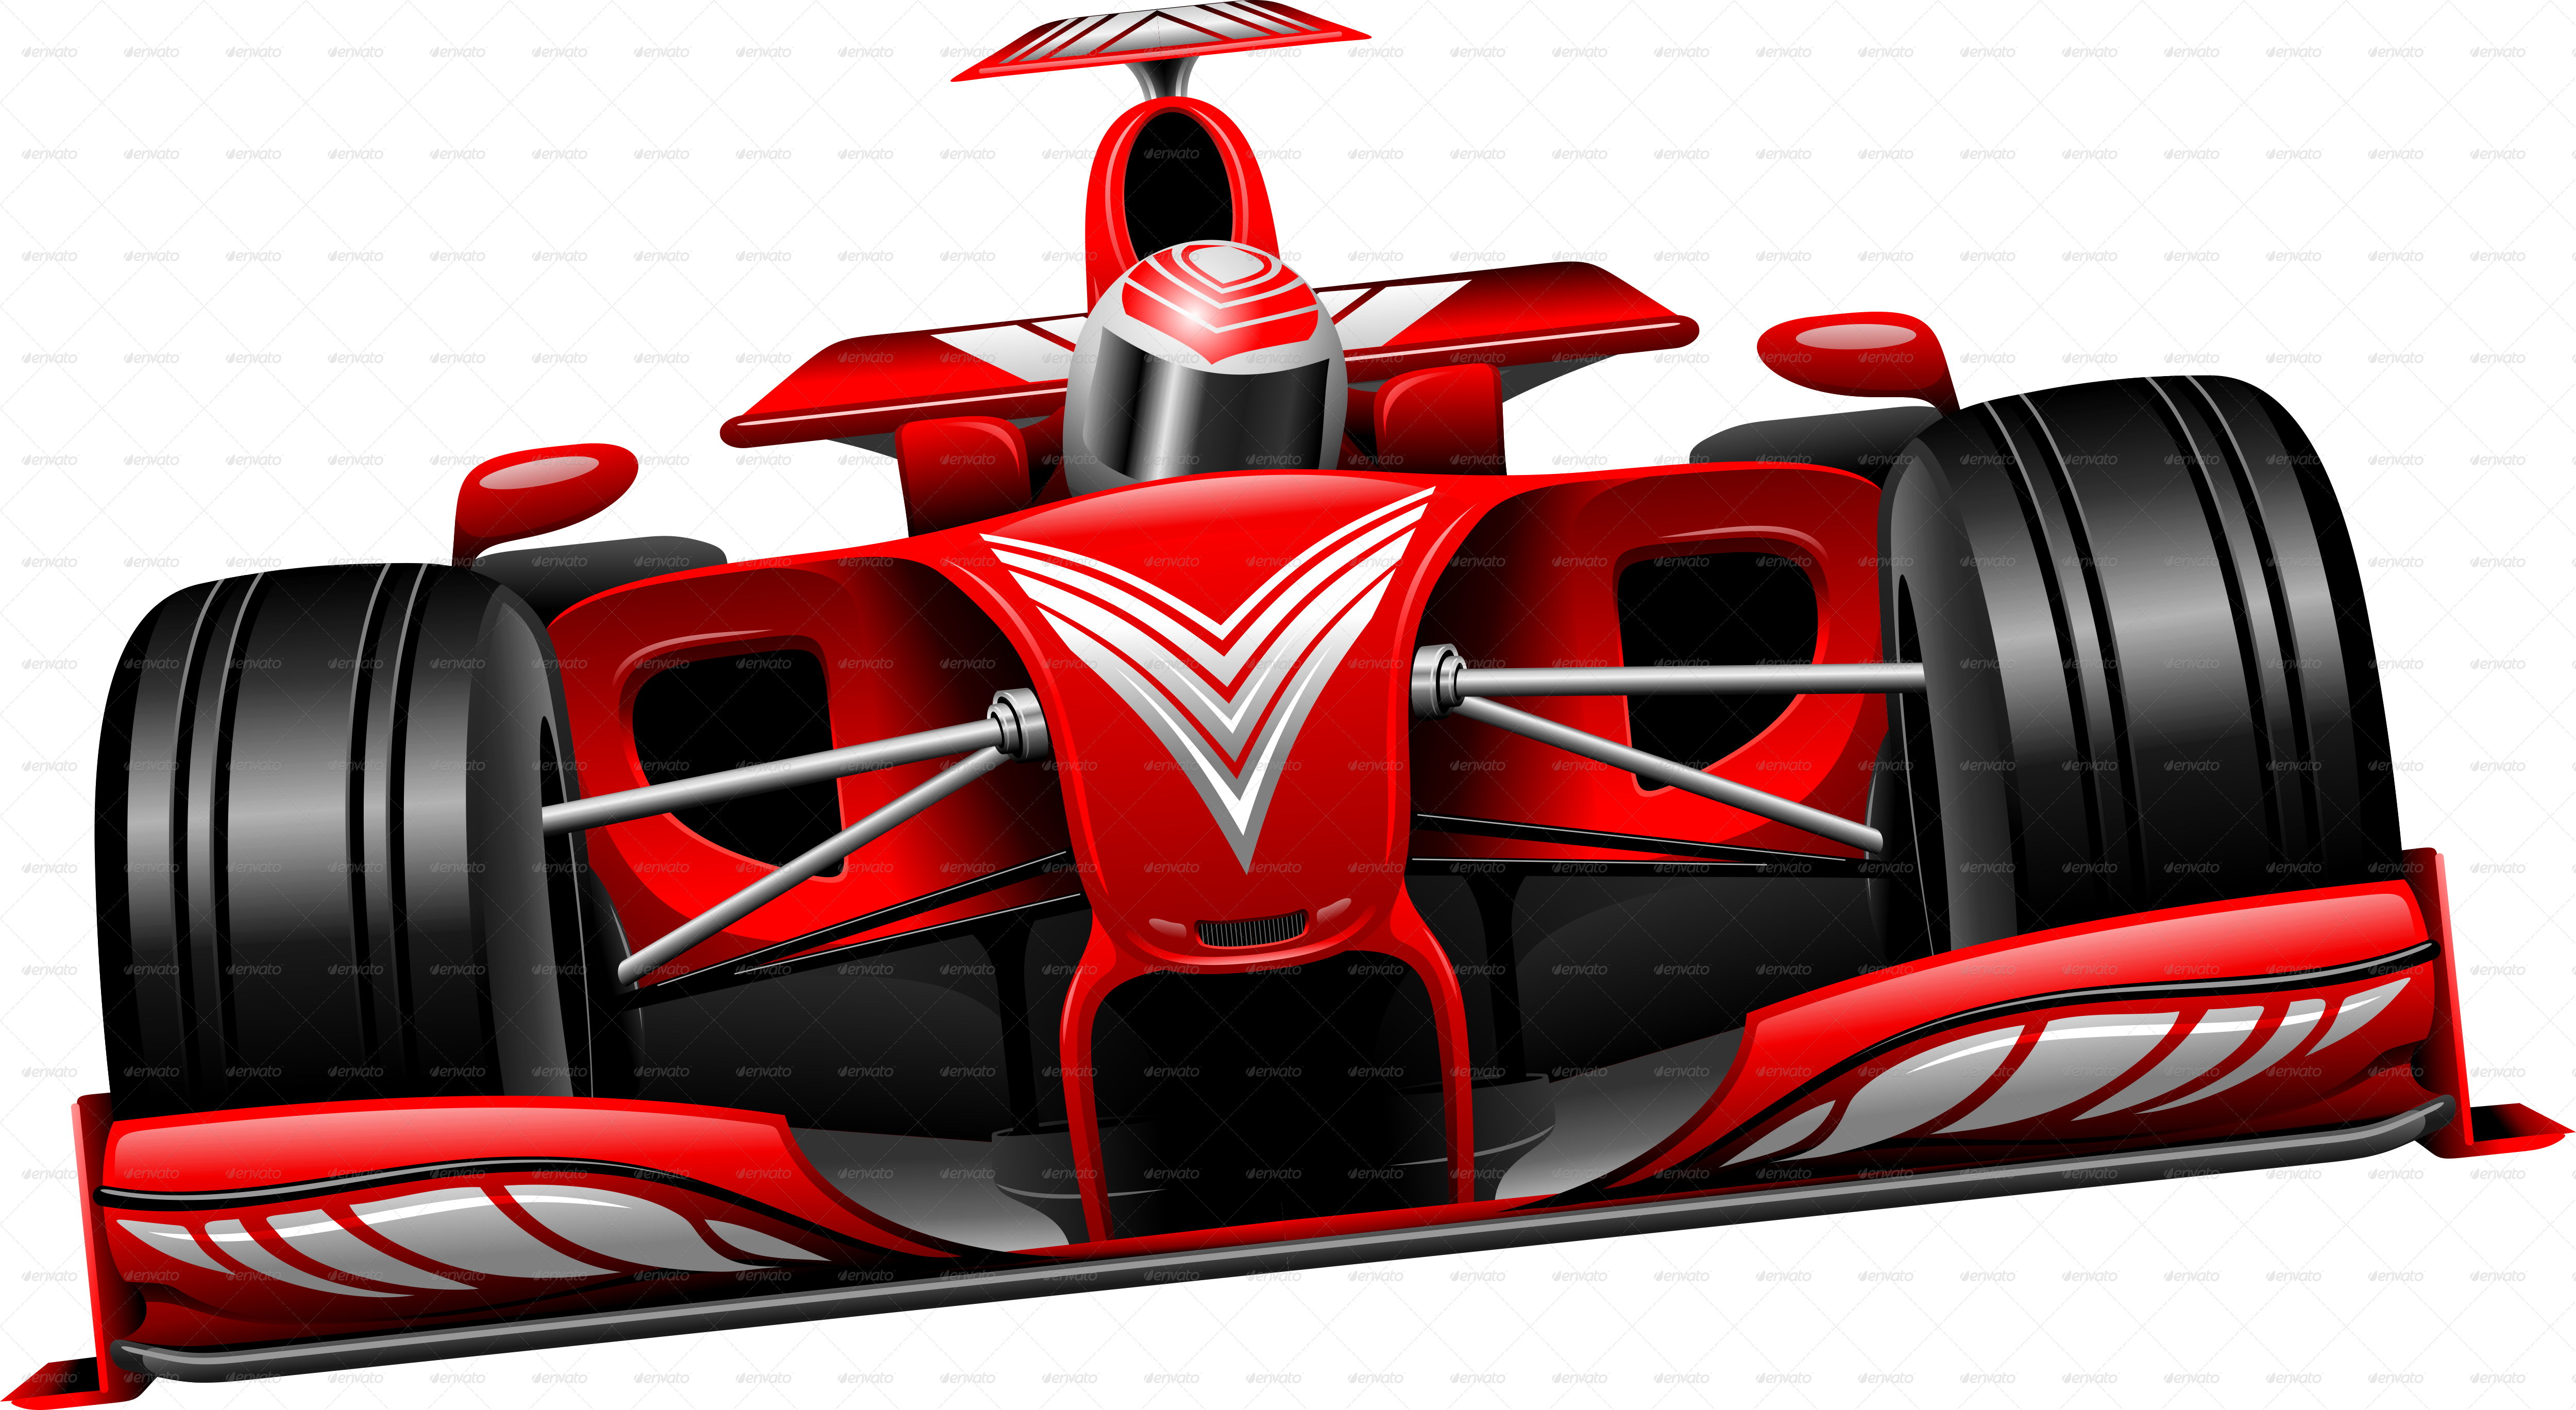 Formula one car clipart png black and white Formula 1 Red Race Car GP Brazil | Themestack.net png black and white